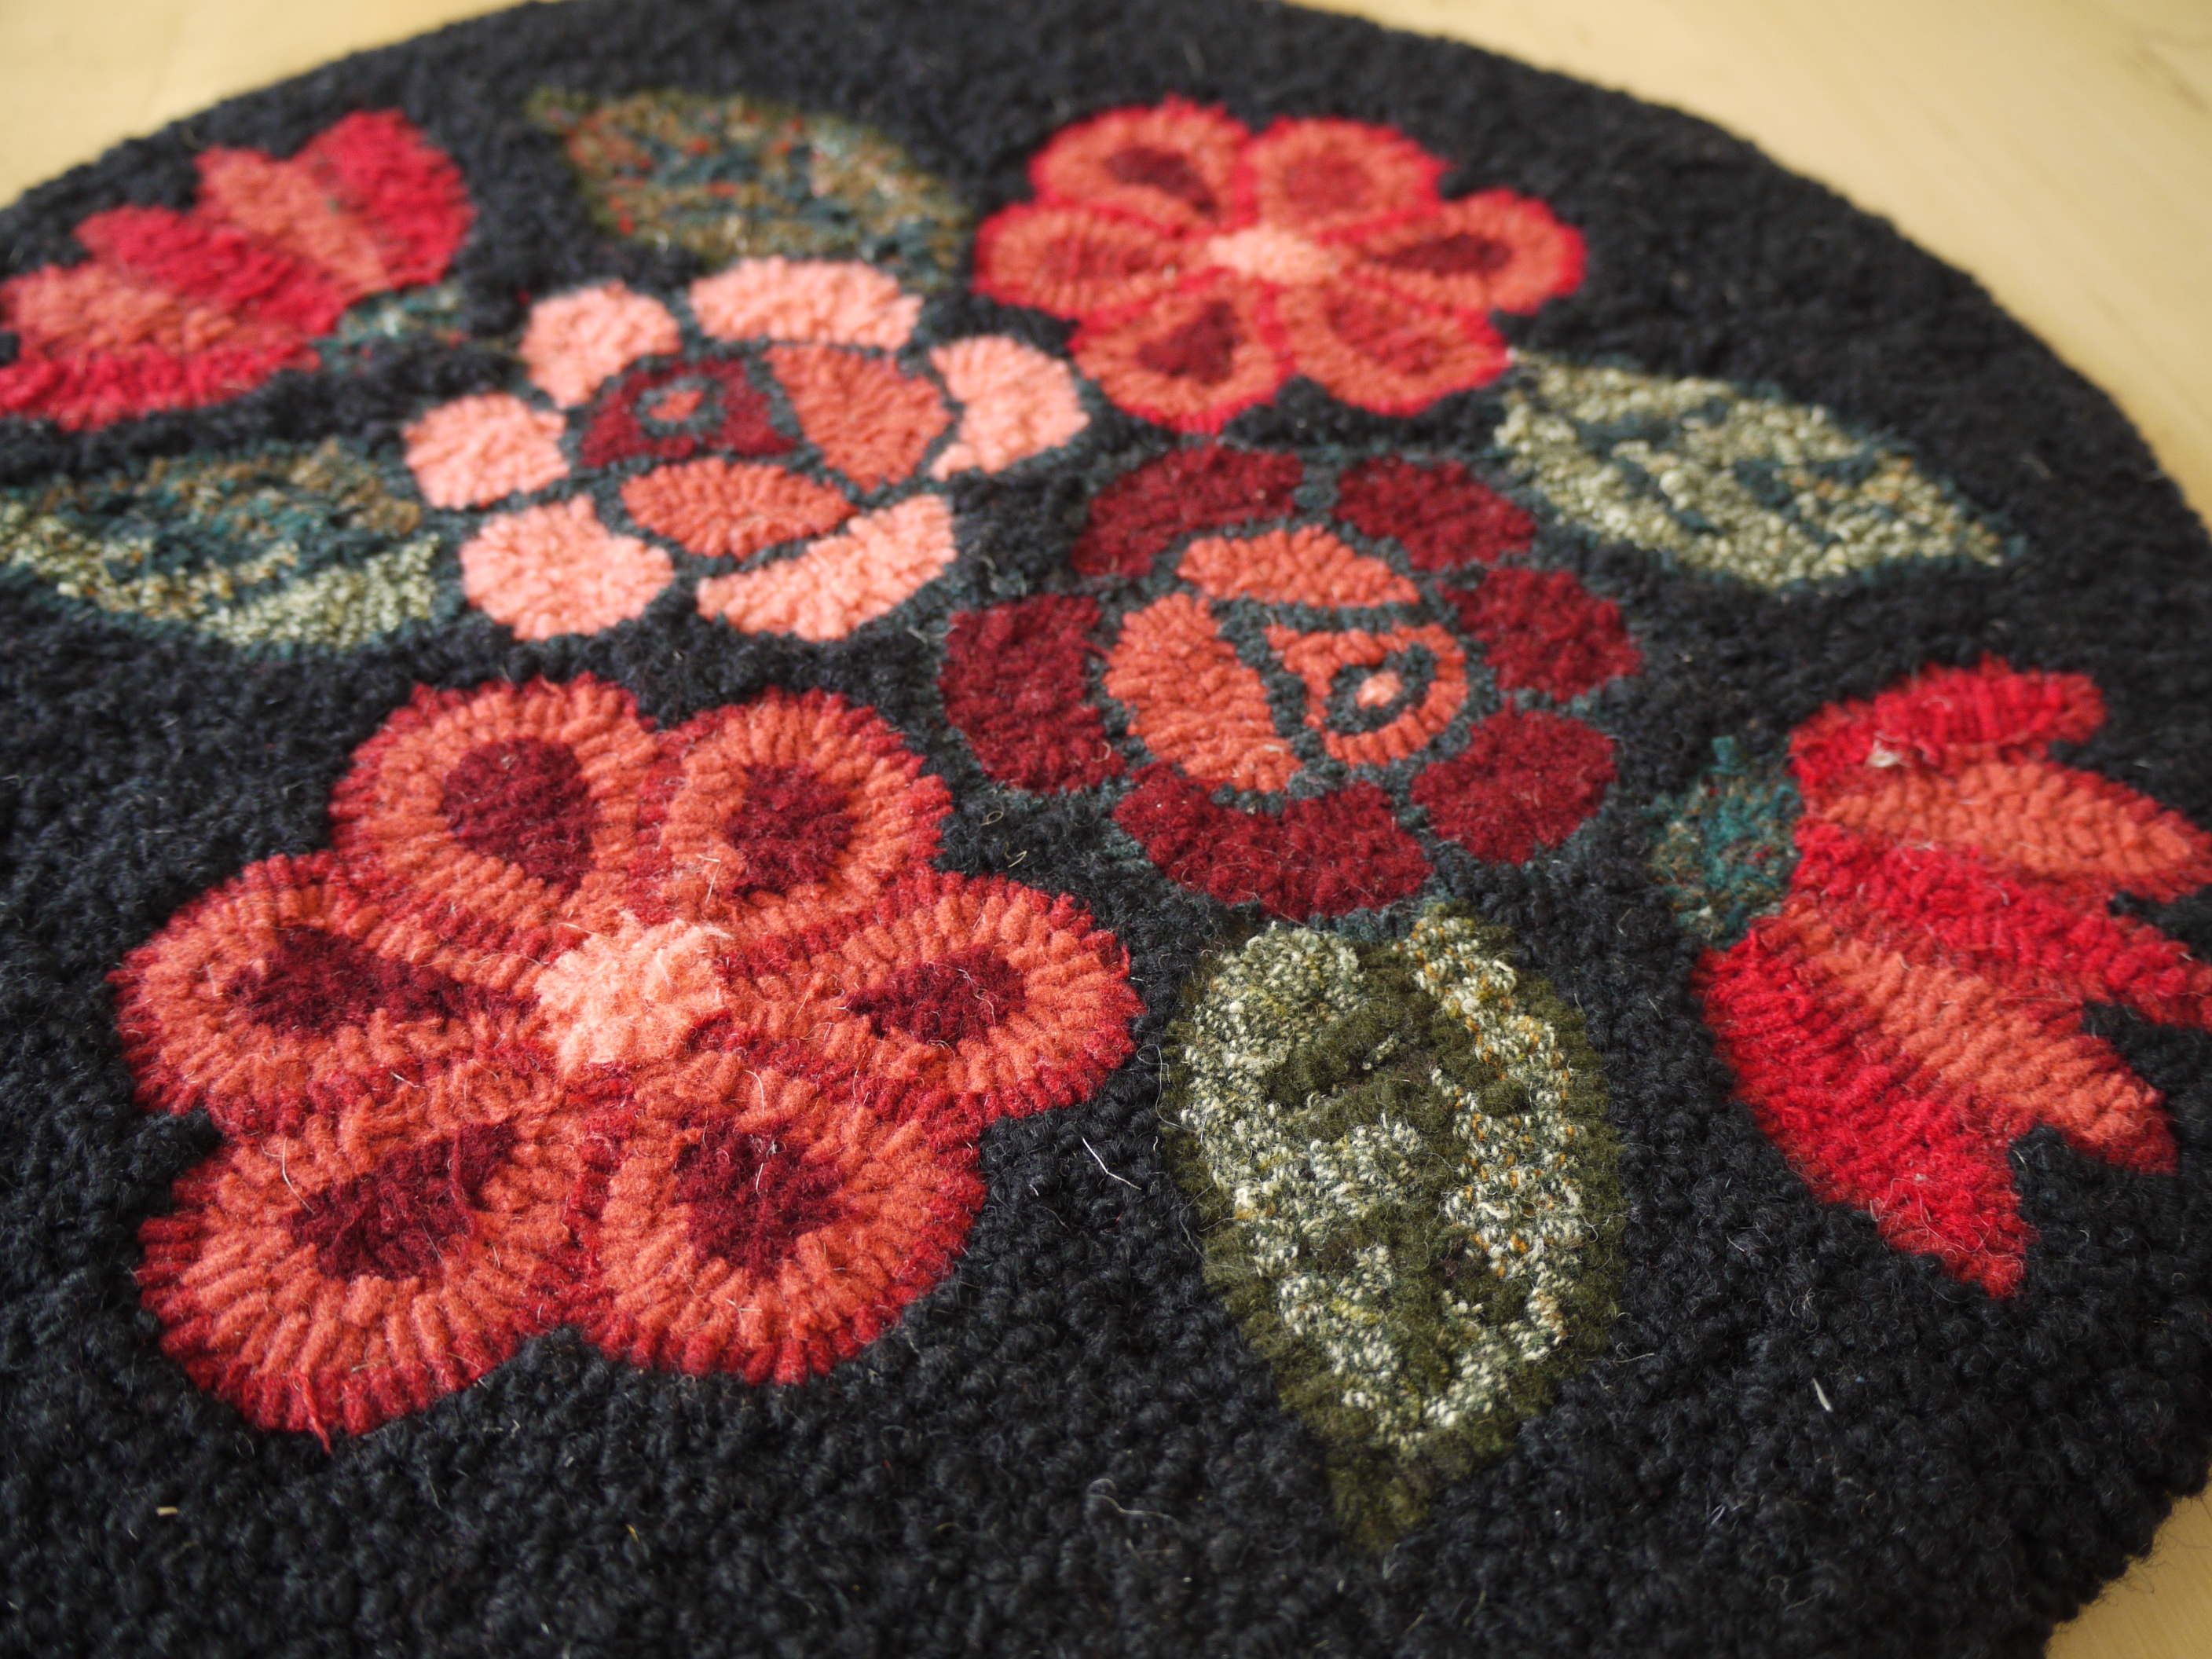 black hooked mat with coral flowers.